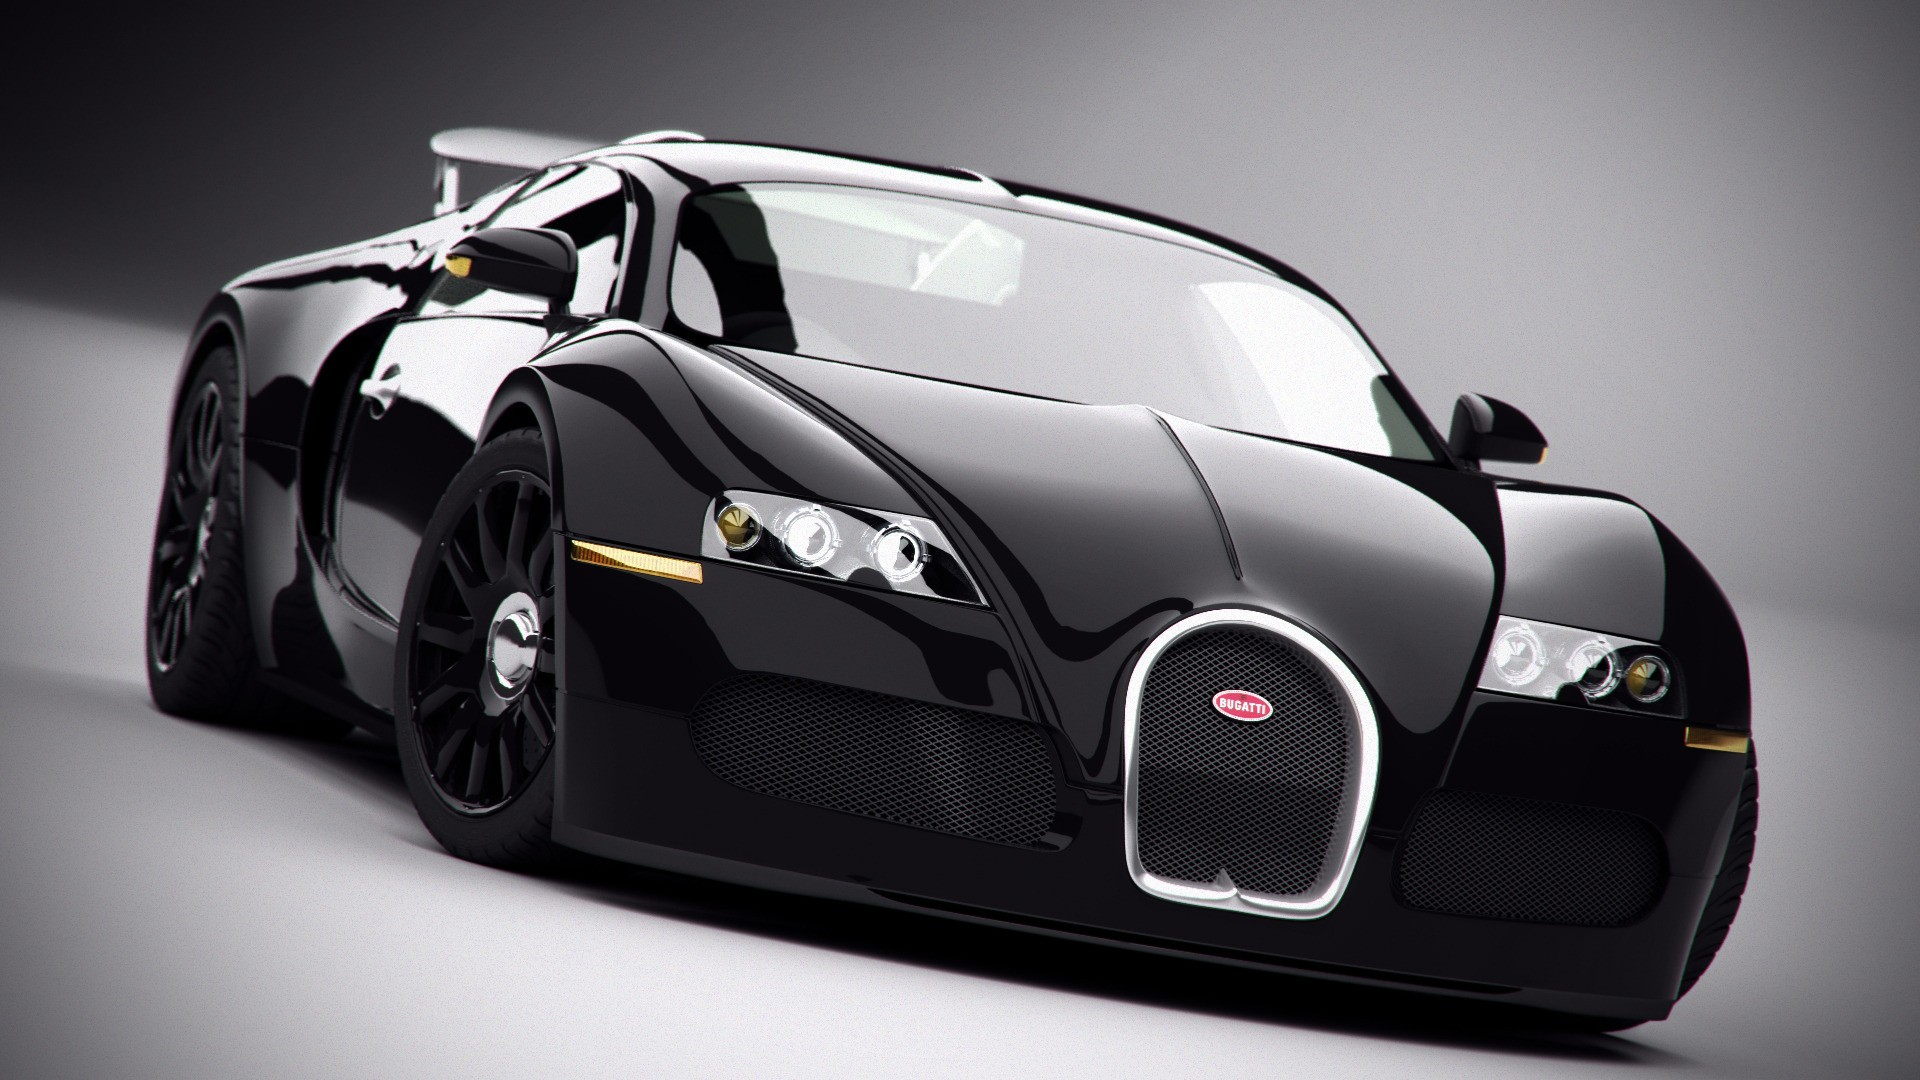 Cool Wallpapers Bugatti Veyron HD Wallpaper of Car   hdwallpaper2013 1920x1080